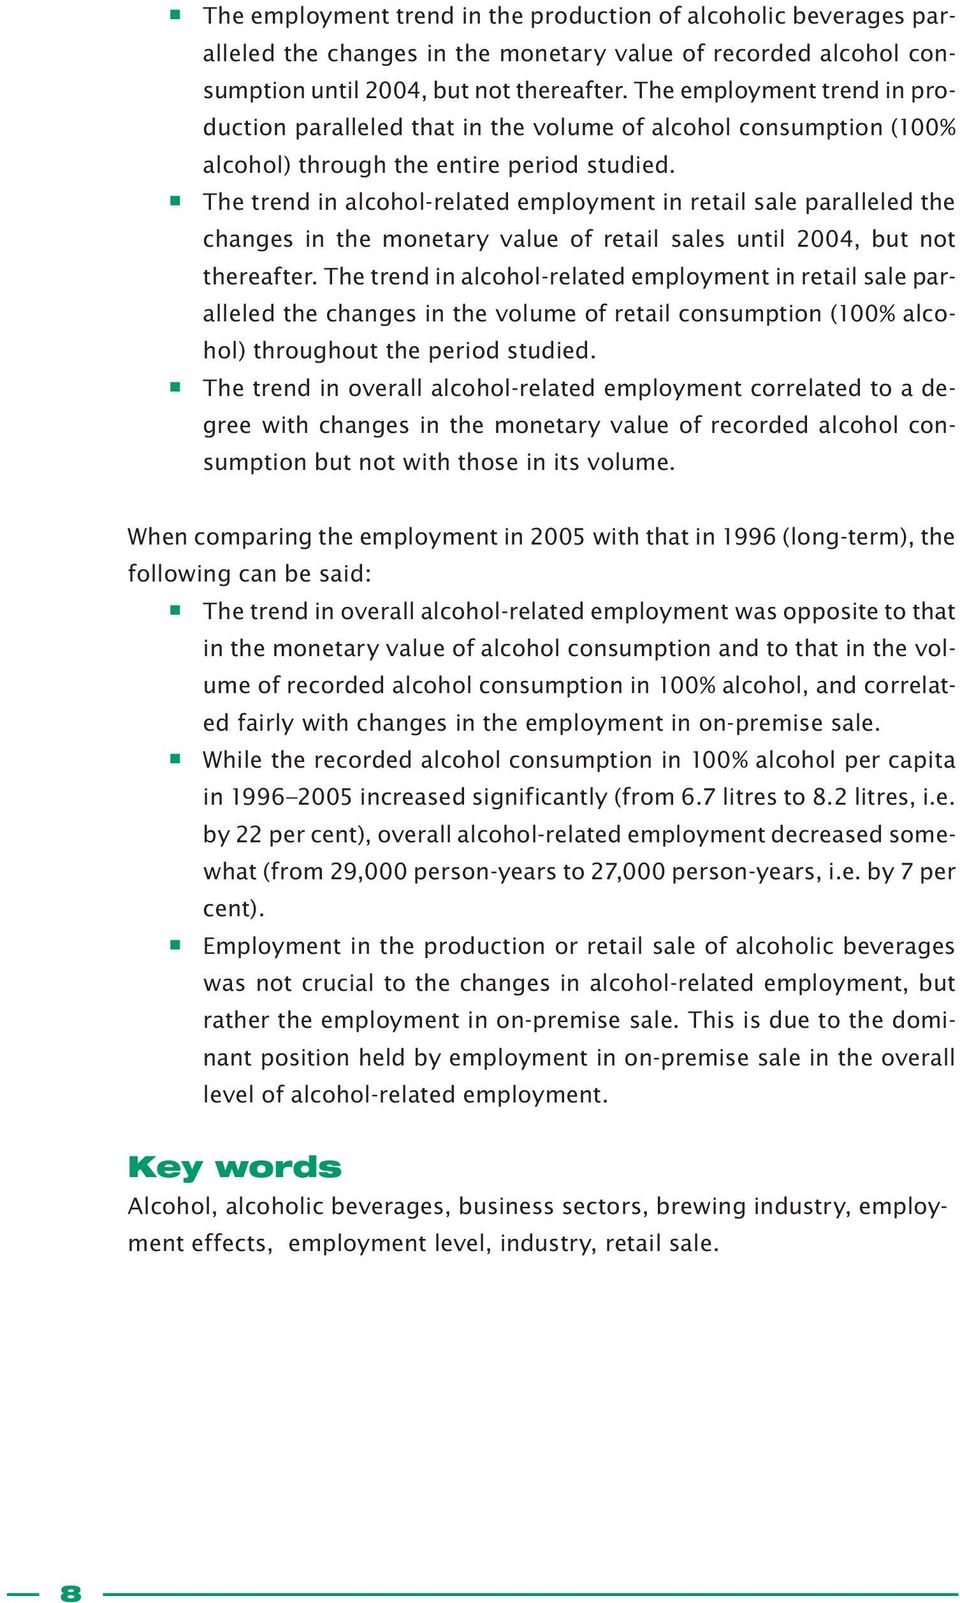 The trend in alcohol-related employment in retail sale paralleled the changes in the monetary value of retail sales until 2004, but not thereafter.